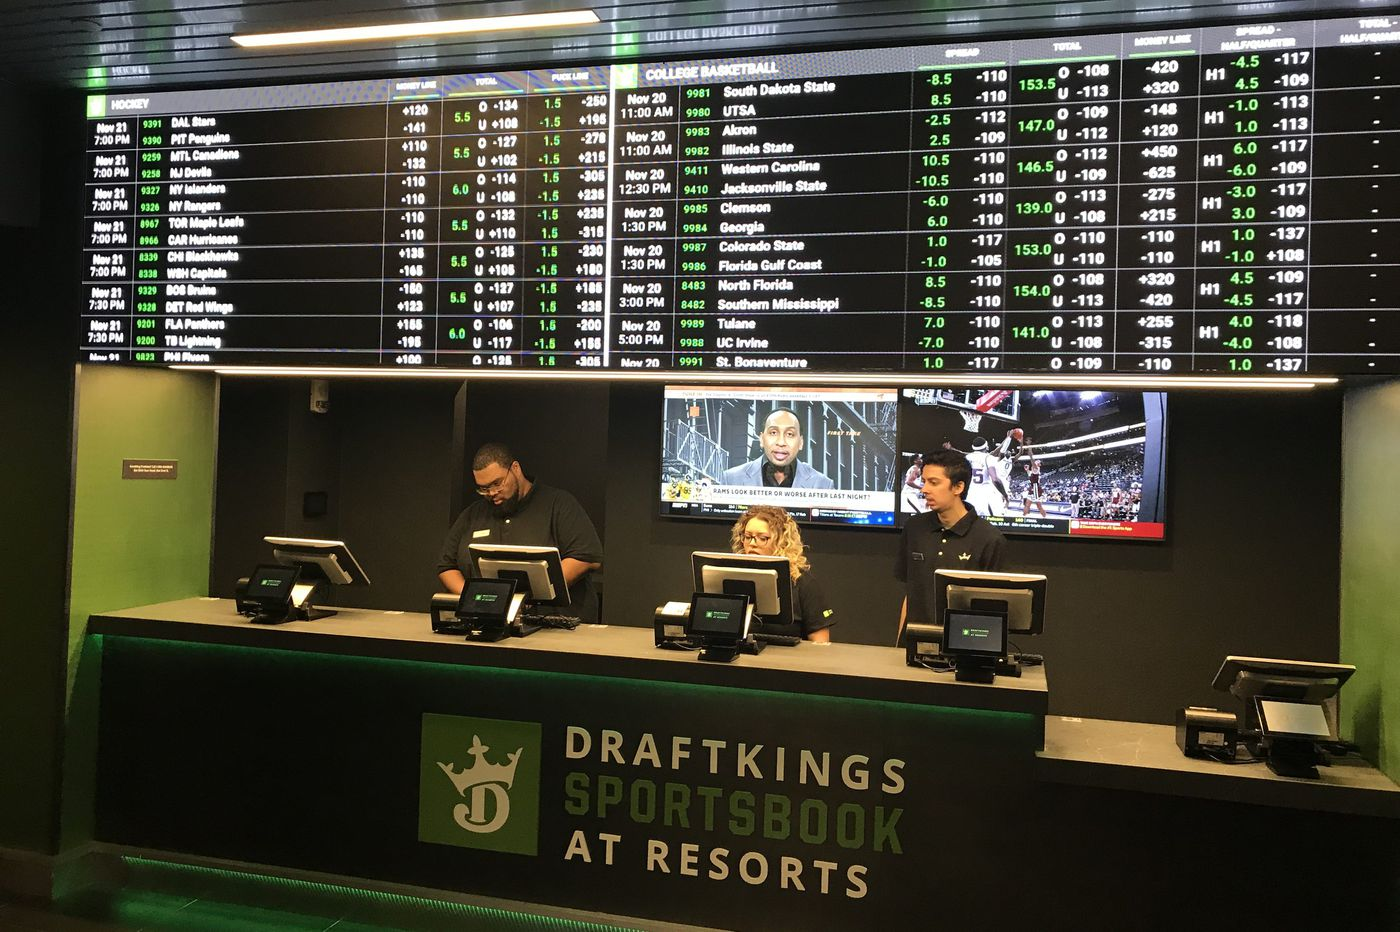 Resorts and DraftKings open permanent sportsbook in Atlantic City